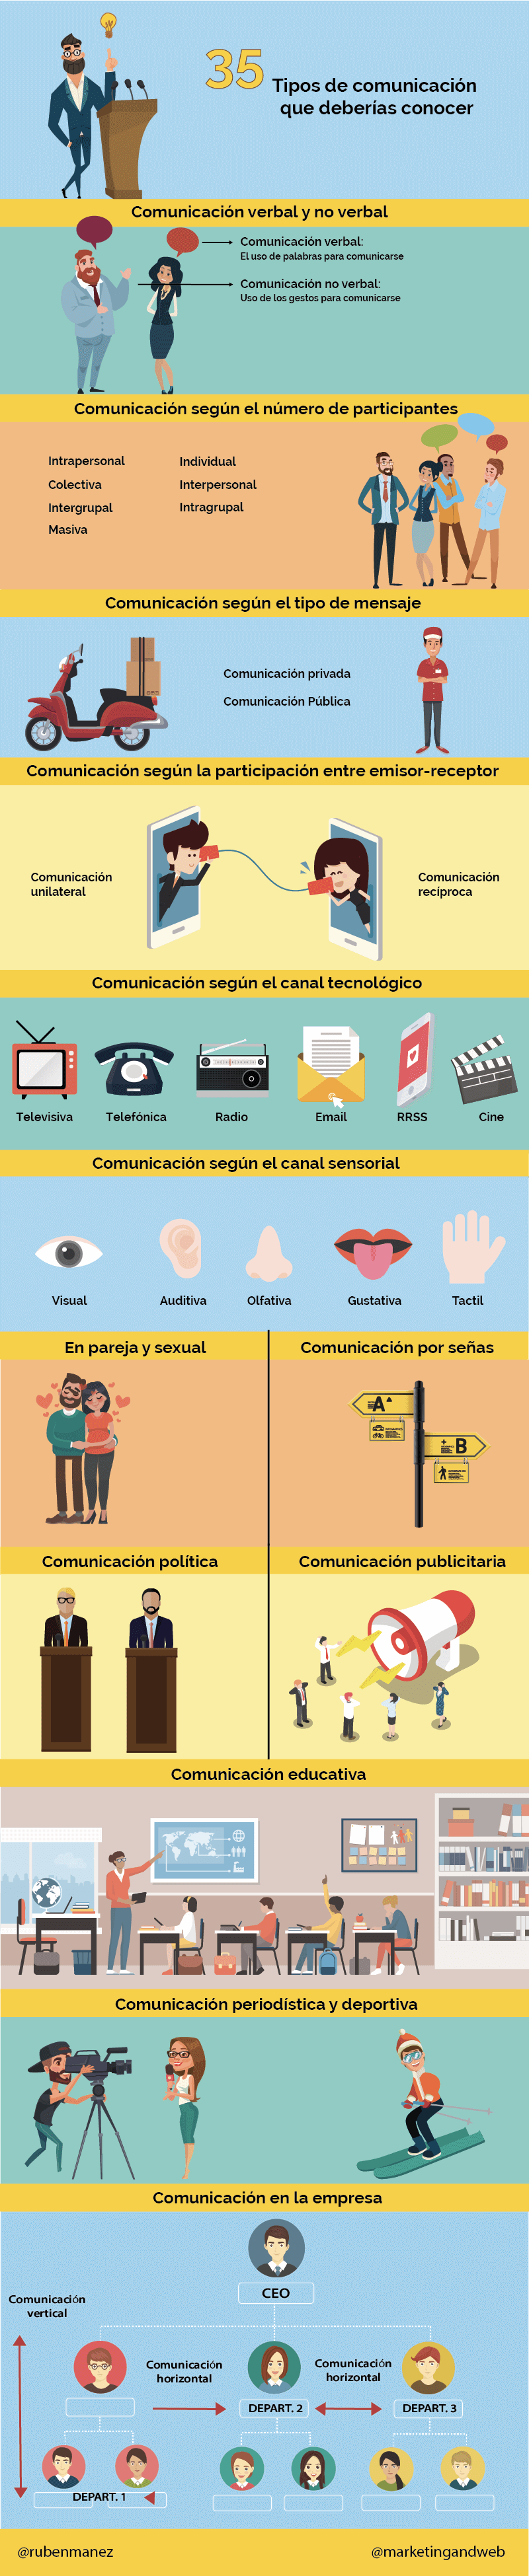 35 tipos de comunicación y sus características  #comunicacion #marketing #marketingdigital #marketingonline #communitymanager #socialmedia #redesociales